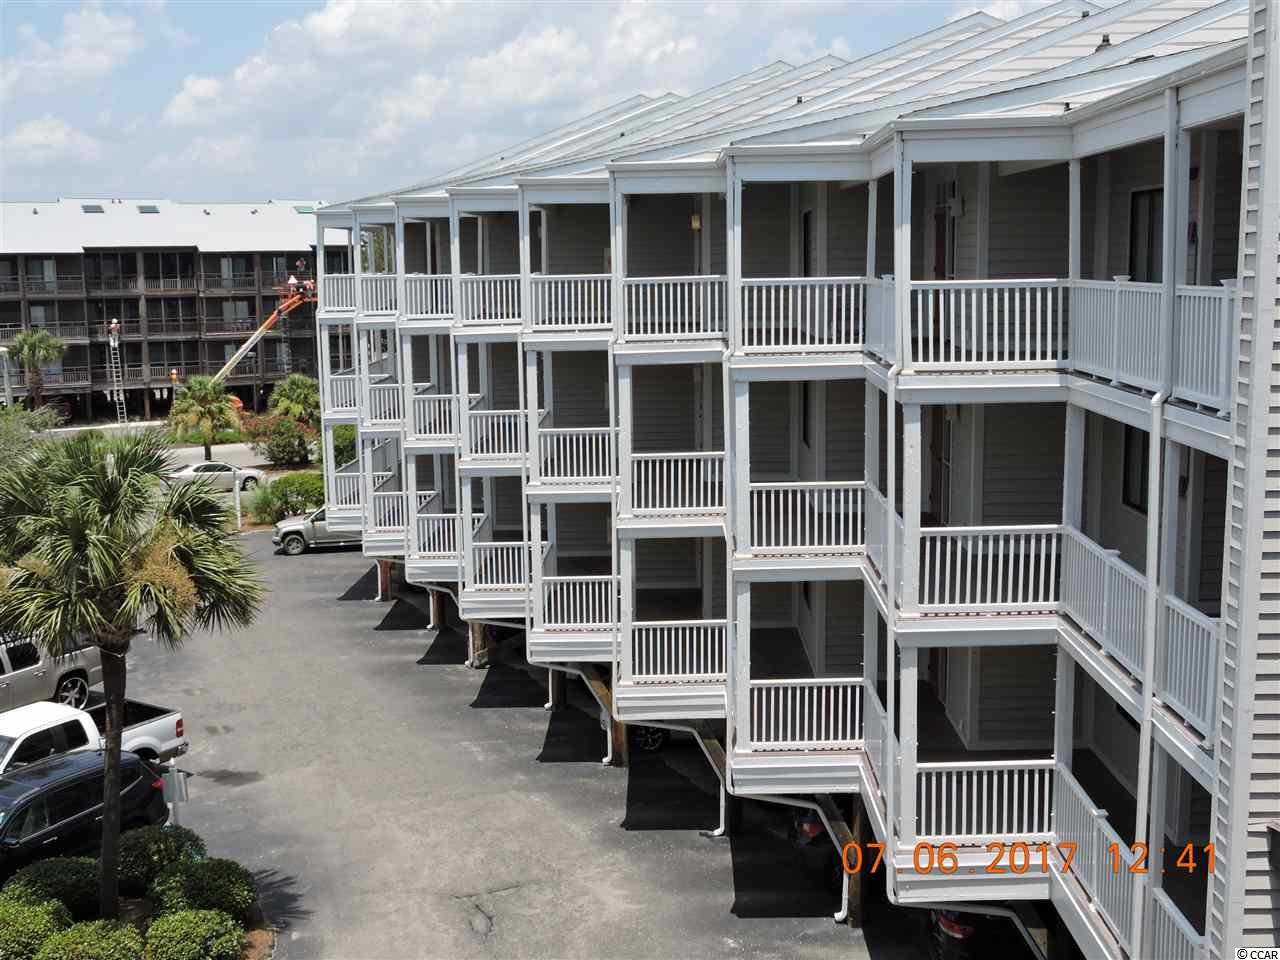 TILGHMAN B&R condo for sale in North Myrtle Beach, SC